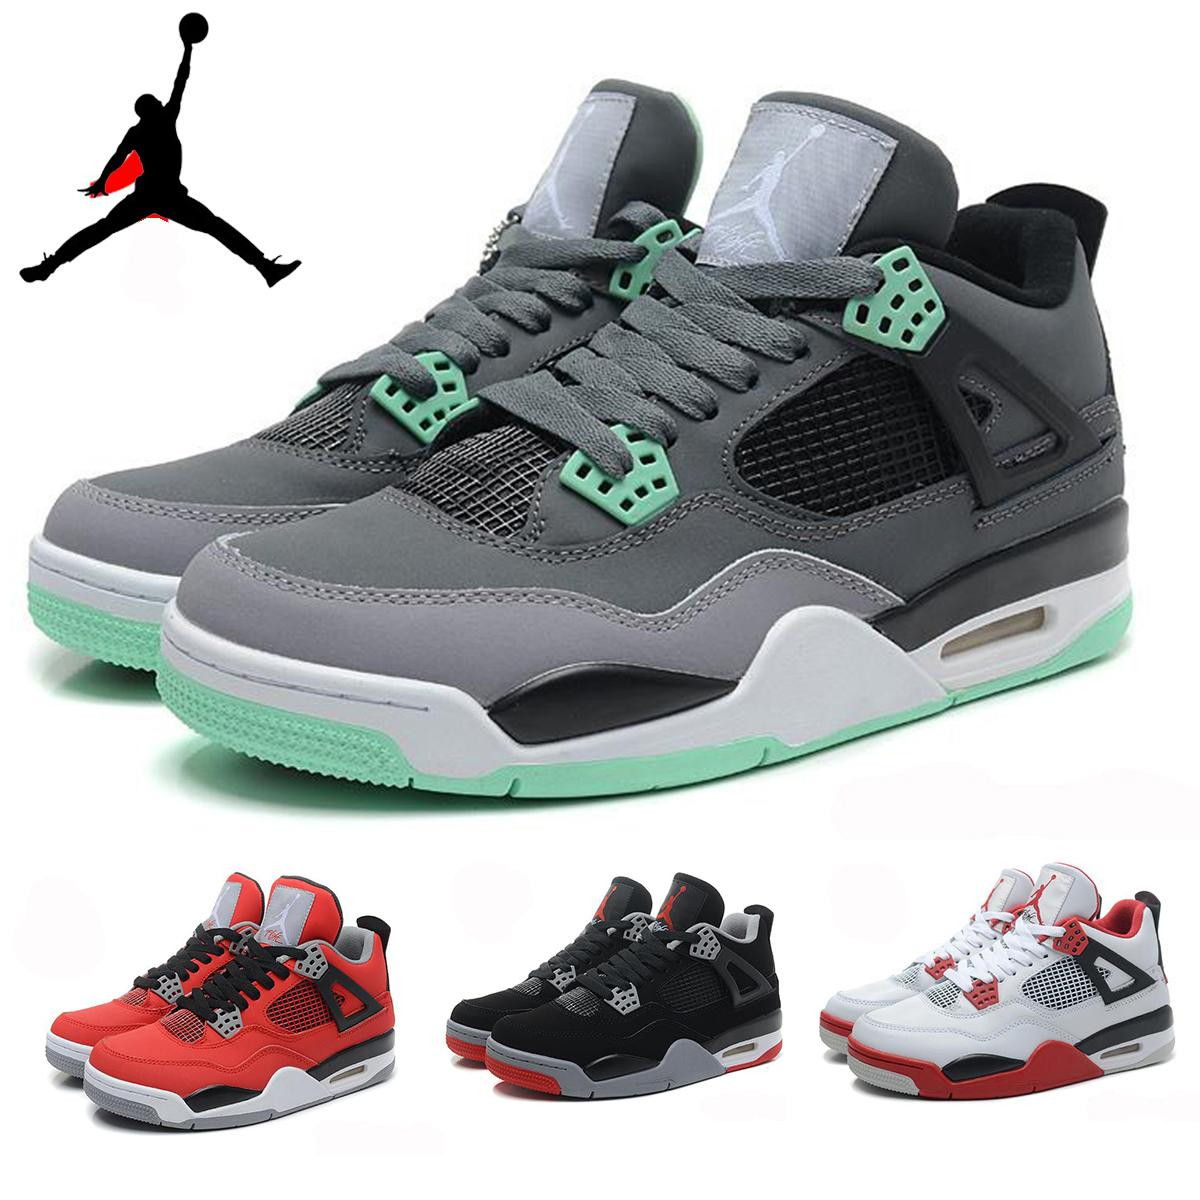 Nike Air Jordan 4 Retro Iv Toro Bravo Bred Green Glow Oreo Thunder Cement Mens Basketball Shoes,Wholesale Aj4 Retro 4 Iv Sneakers J4s 41 47 Shoes Sale ...